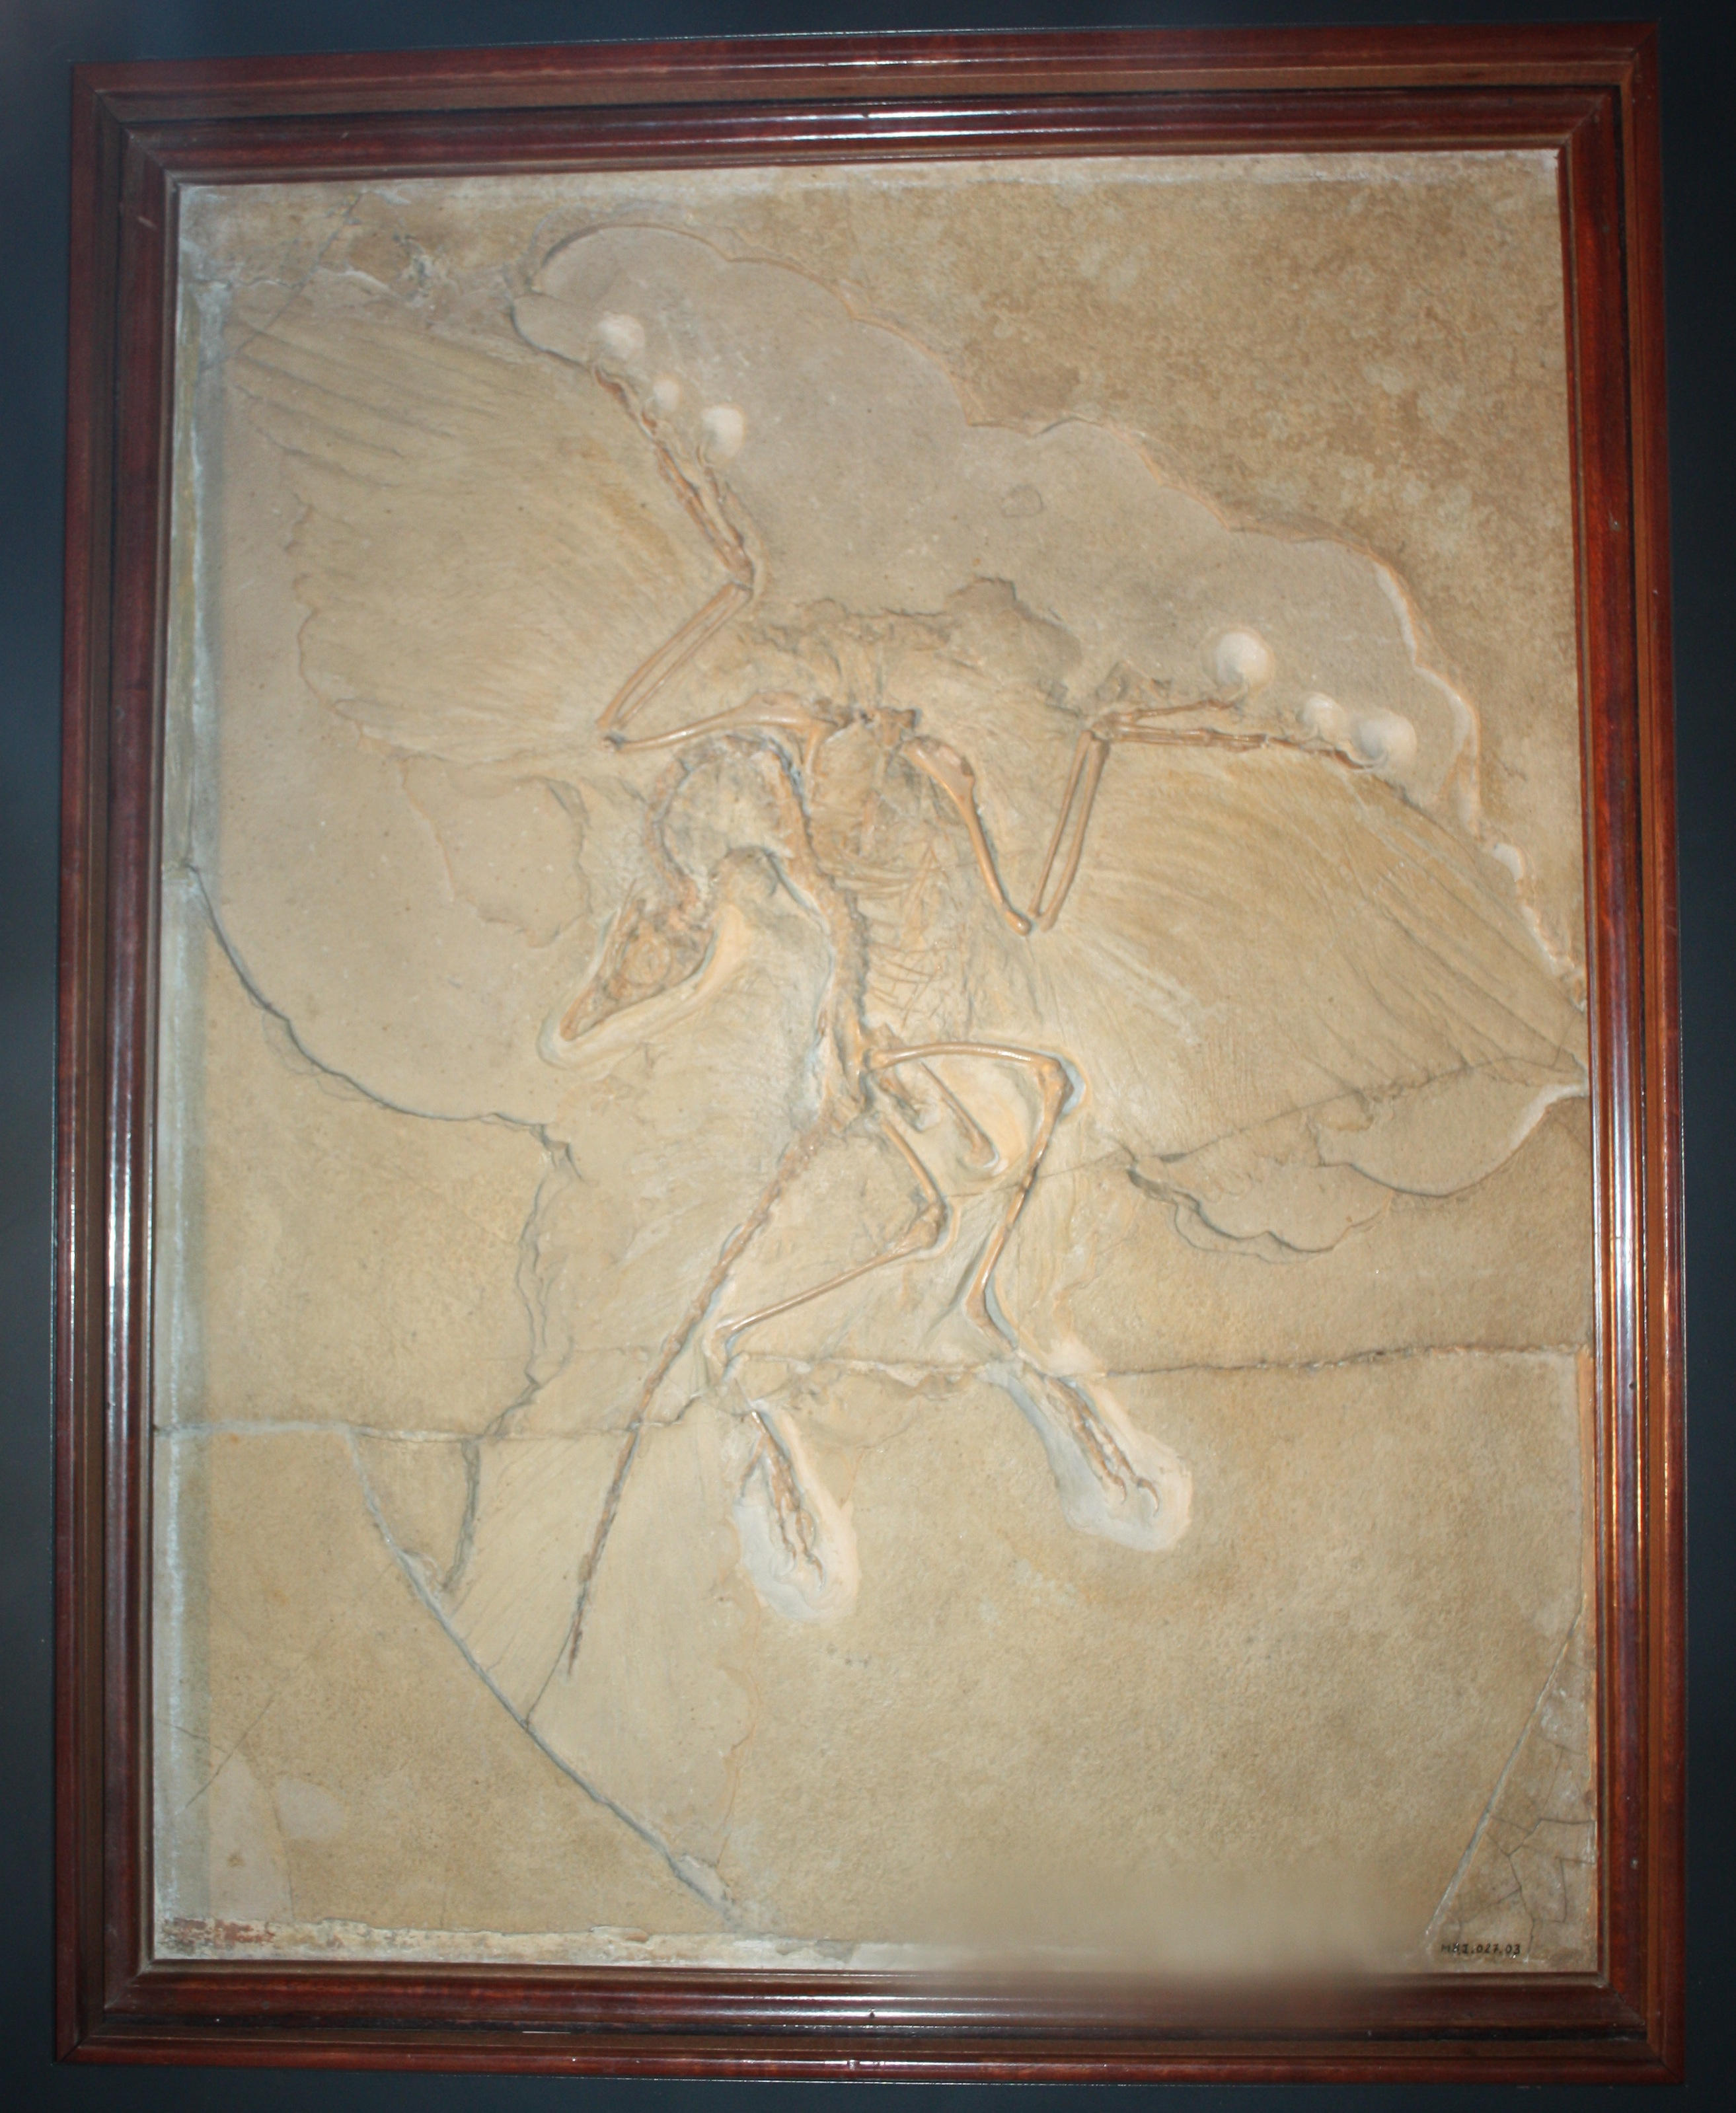 What was archaeopteryx and why was it important?